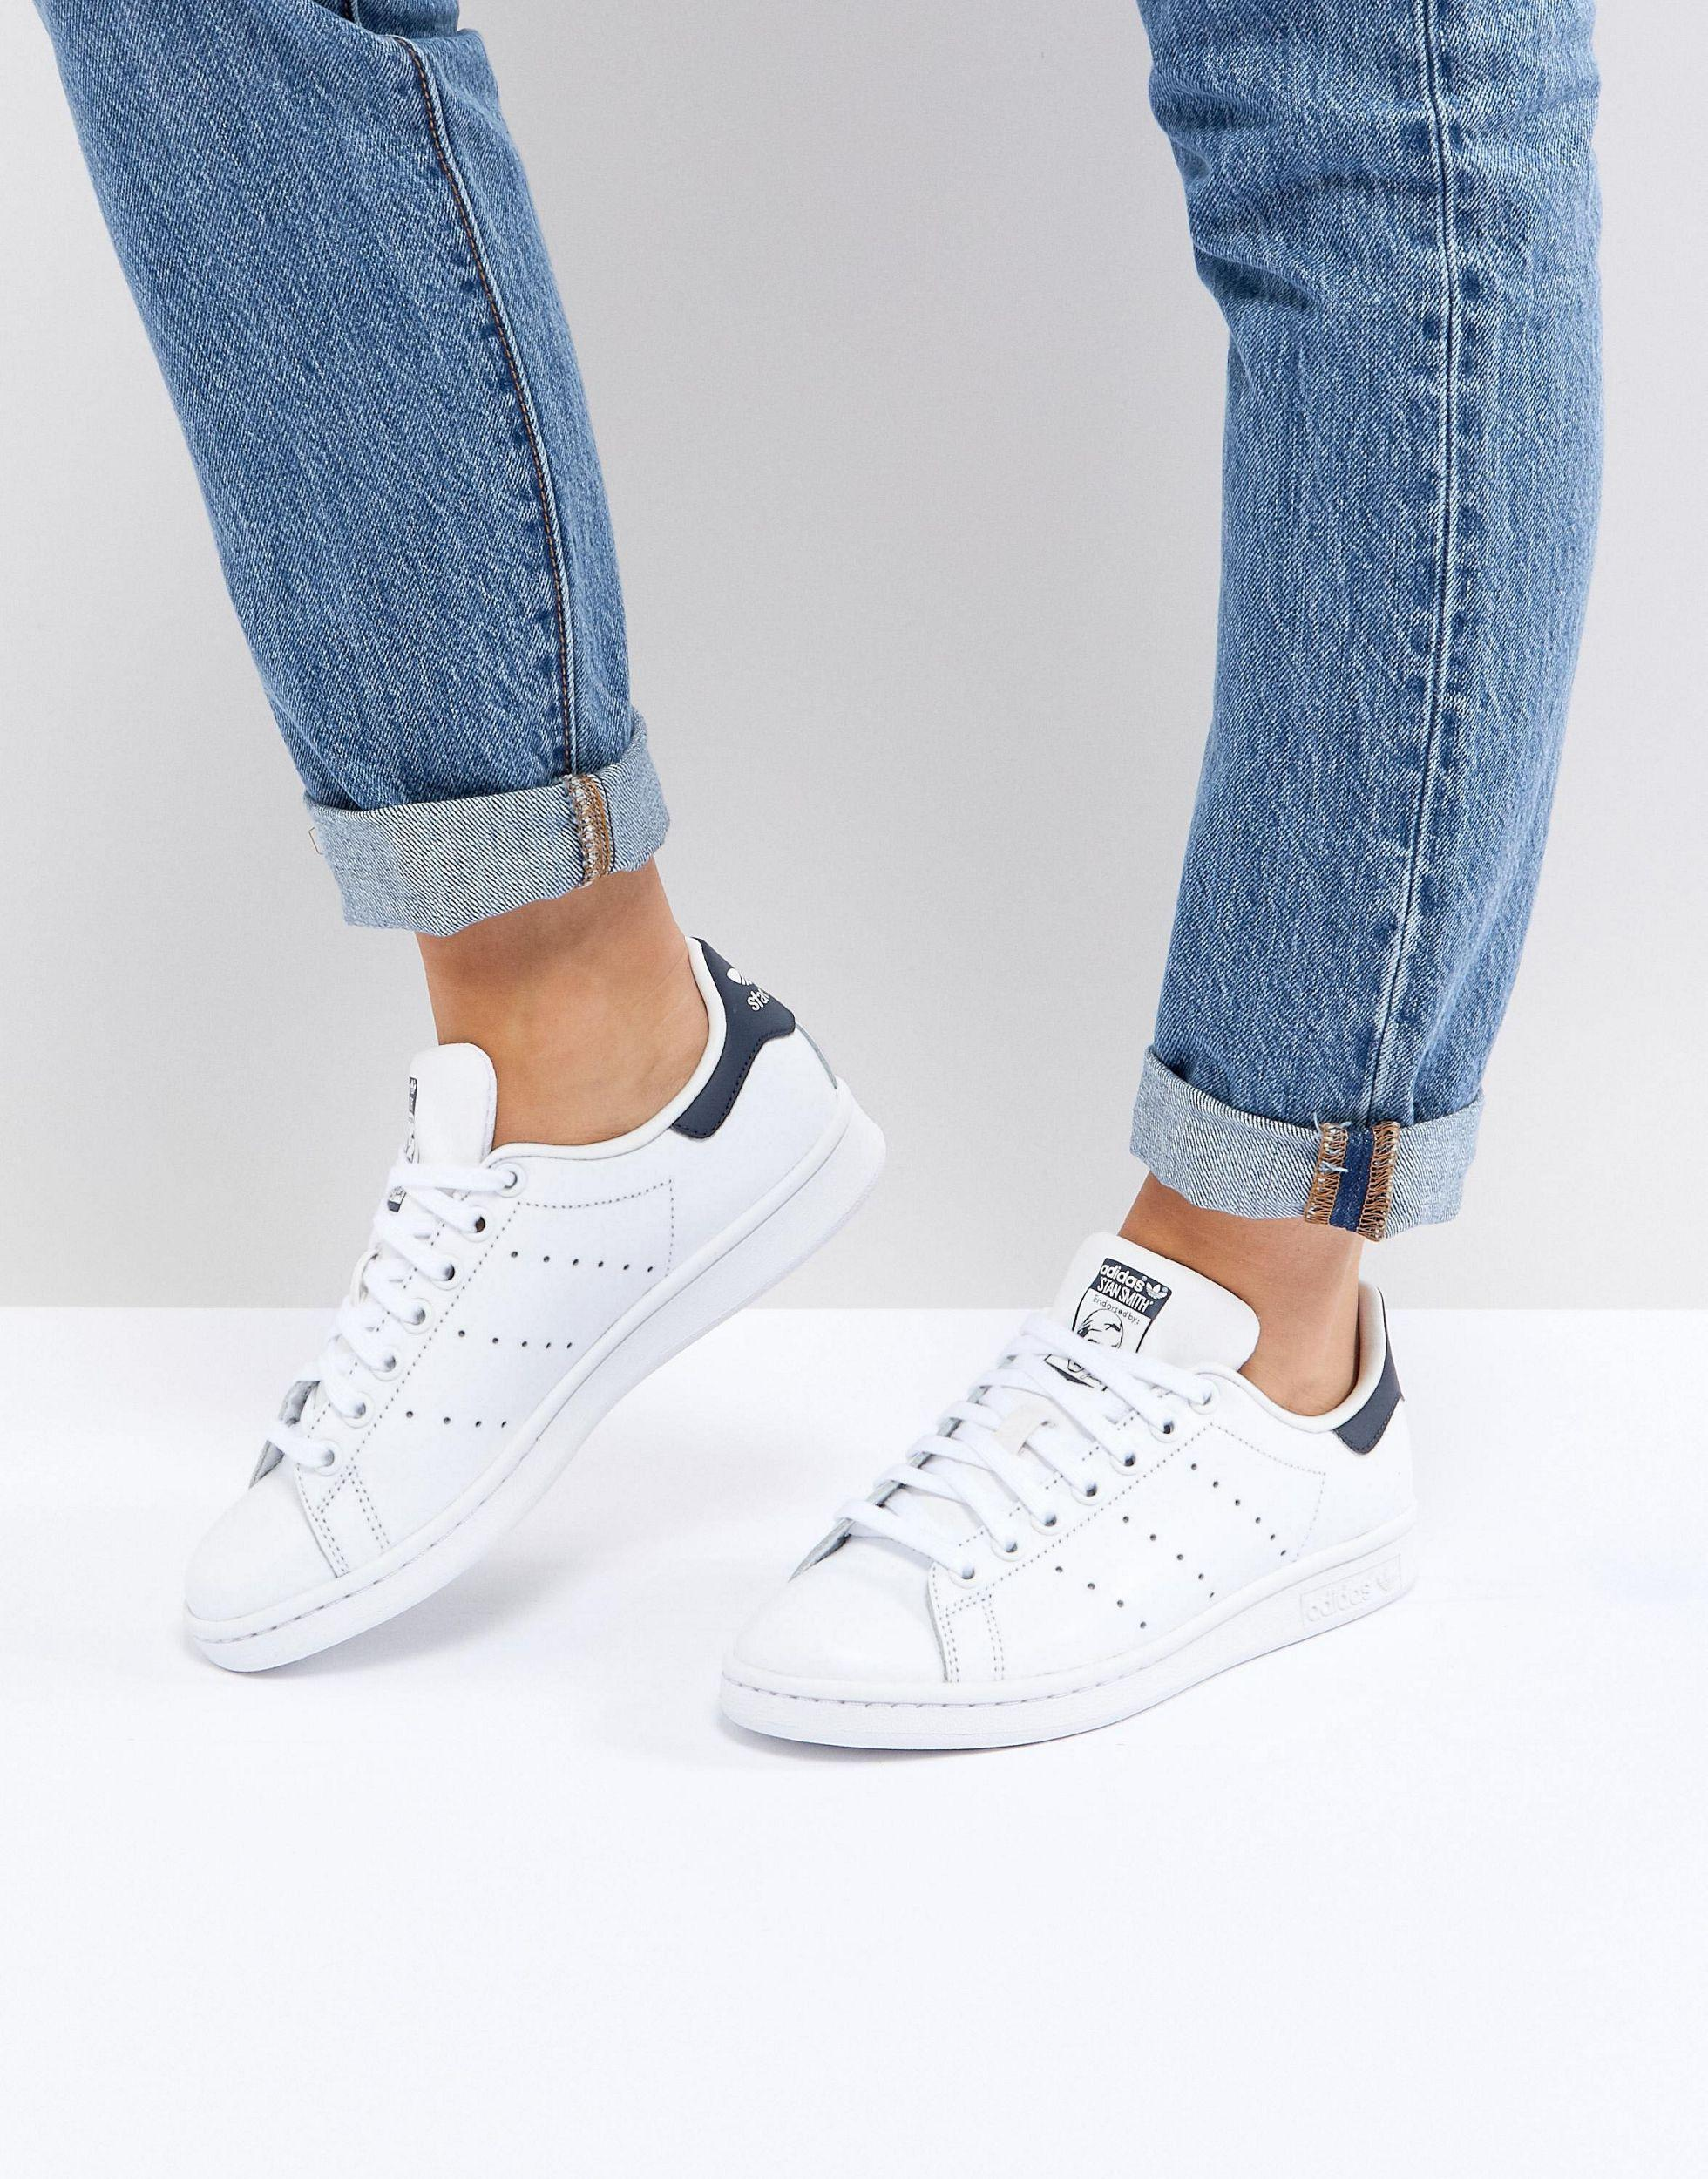 Adidas Originals Stan Smith Shoes Light Ice Blue Leather Sneakers